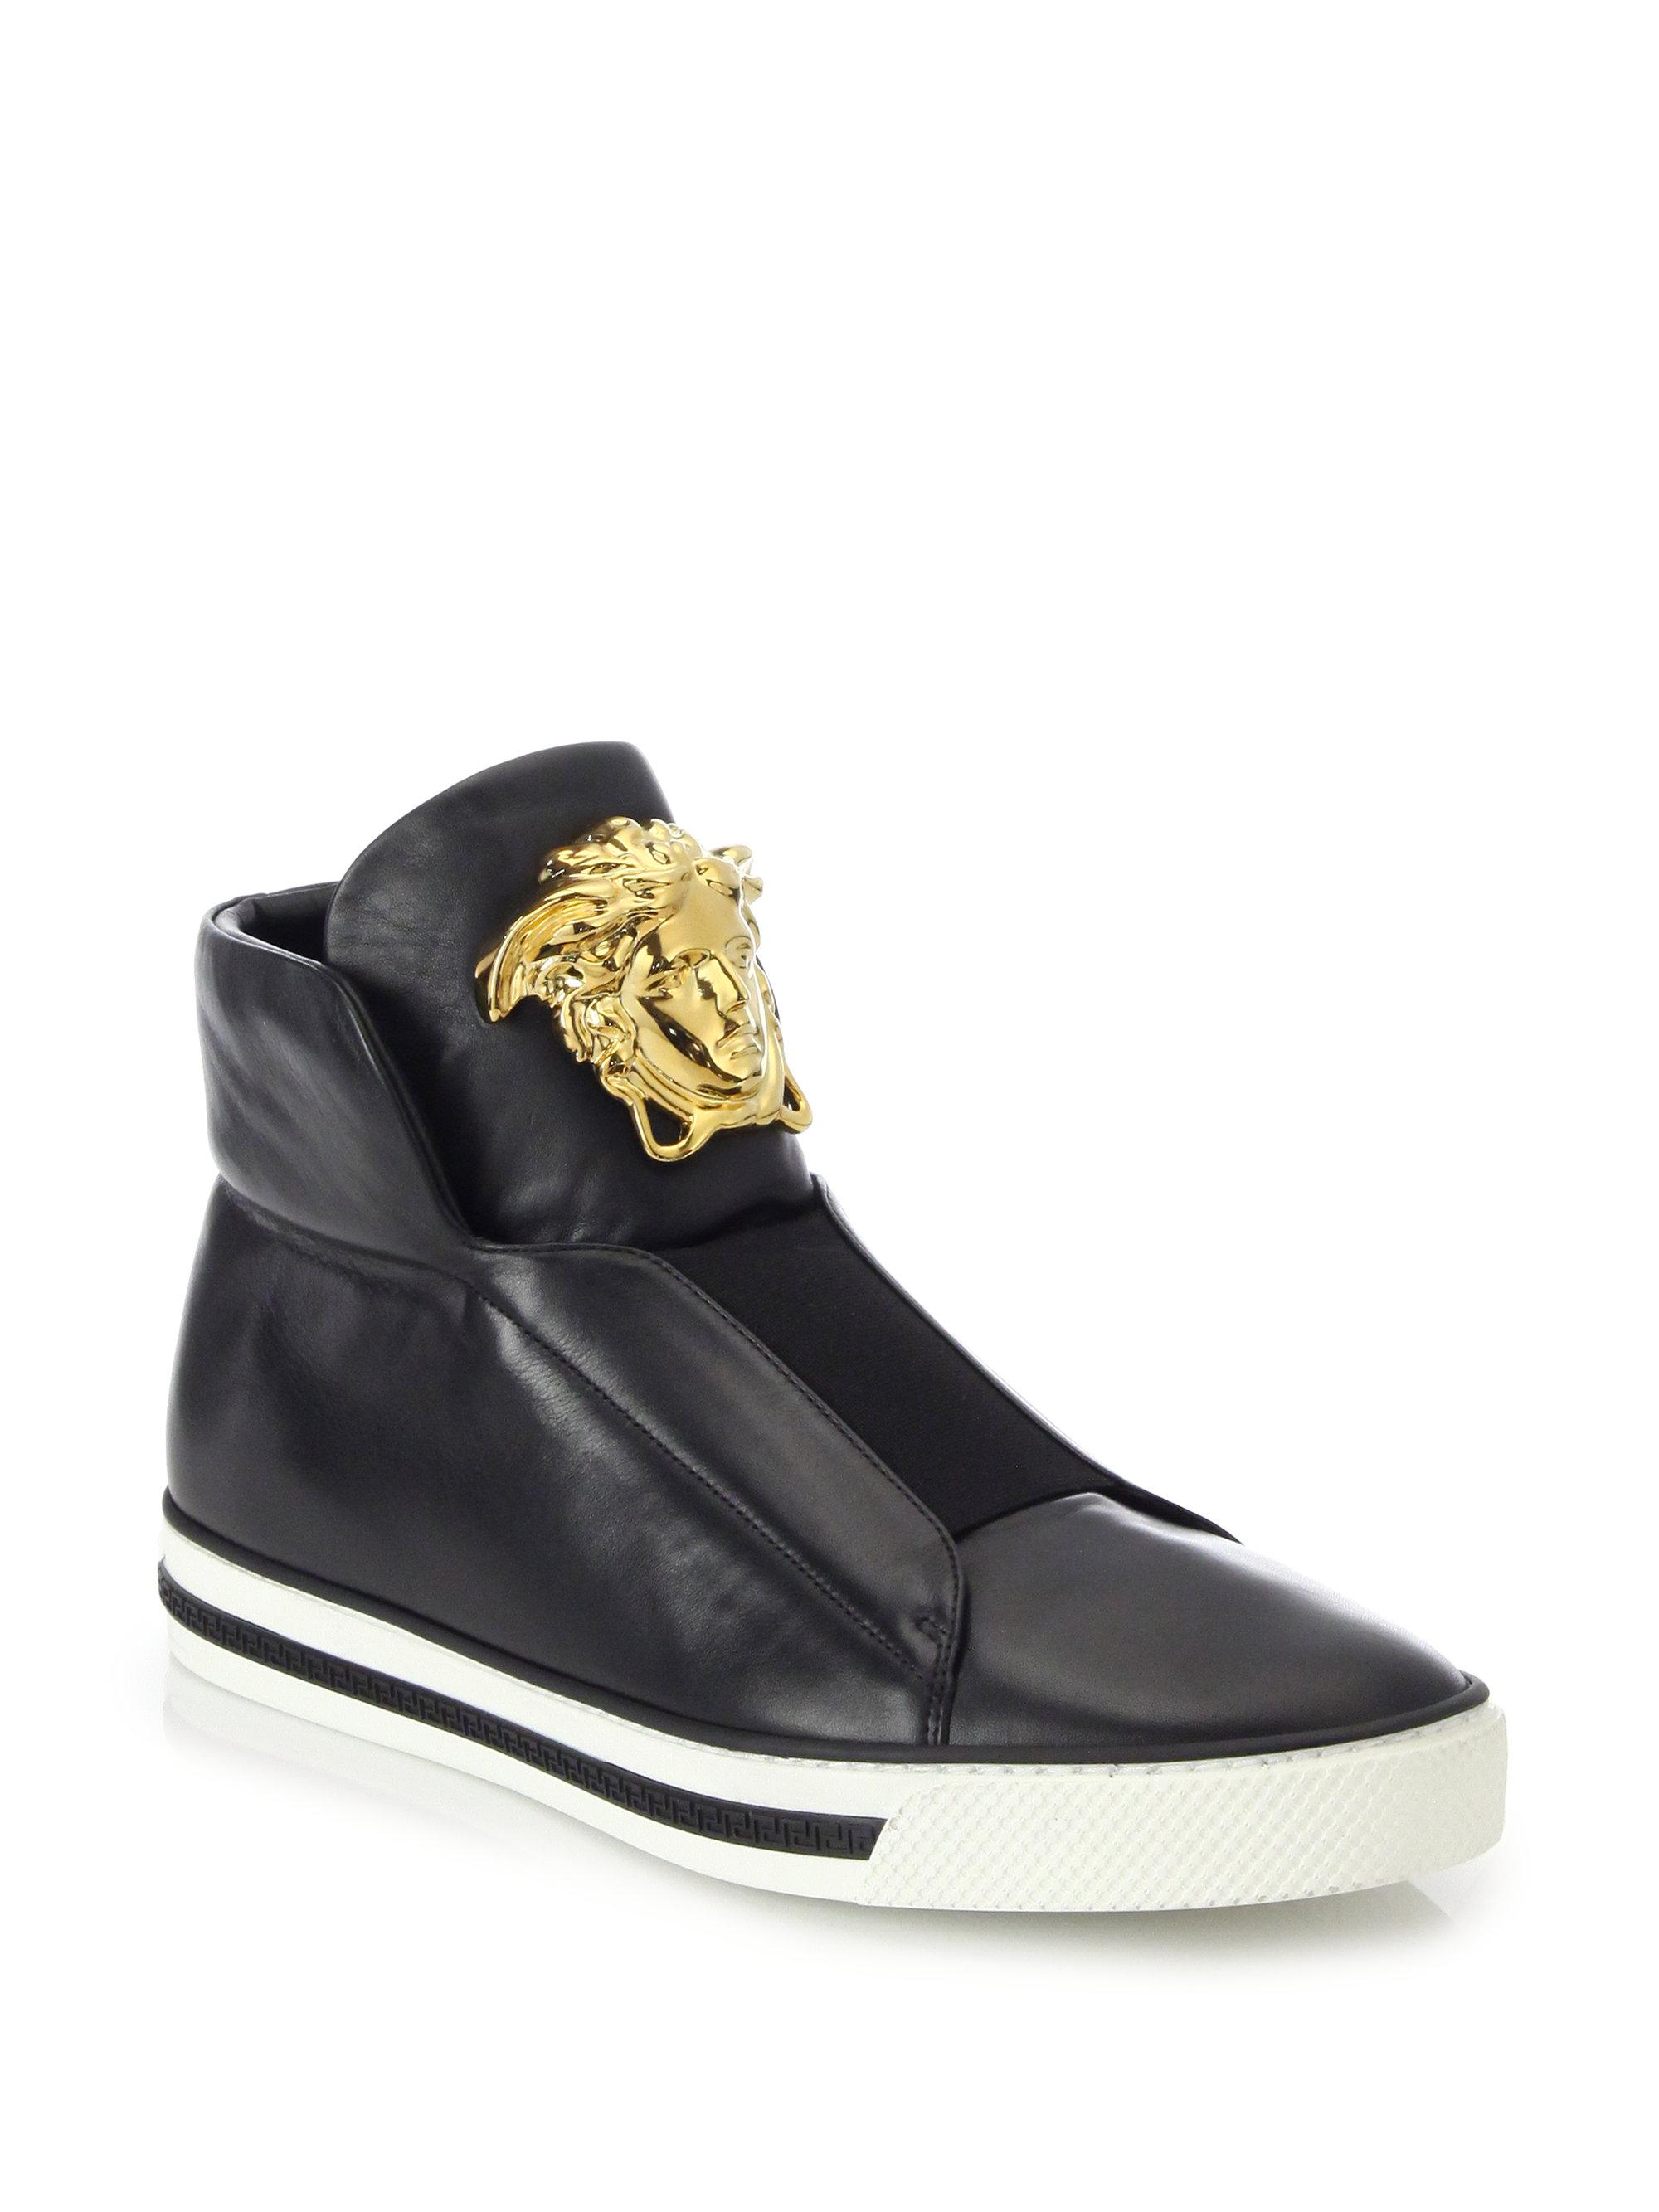 Versace. Men's Black First Idol Leather High-top Trainers